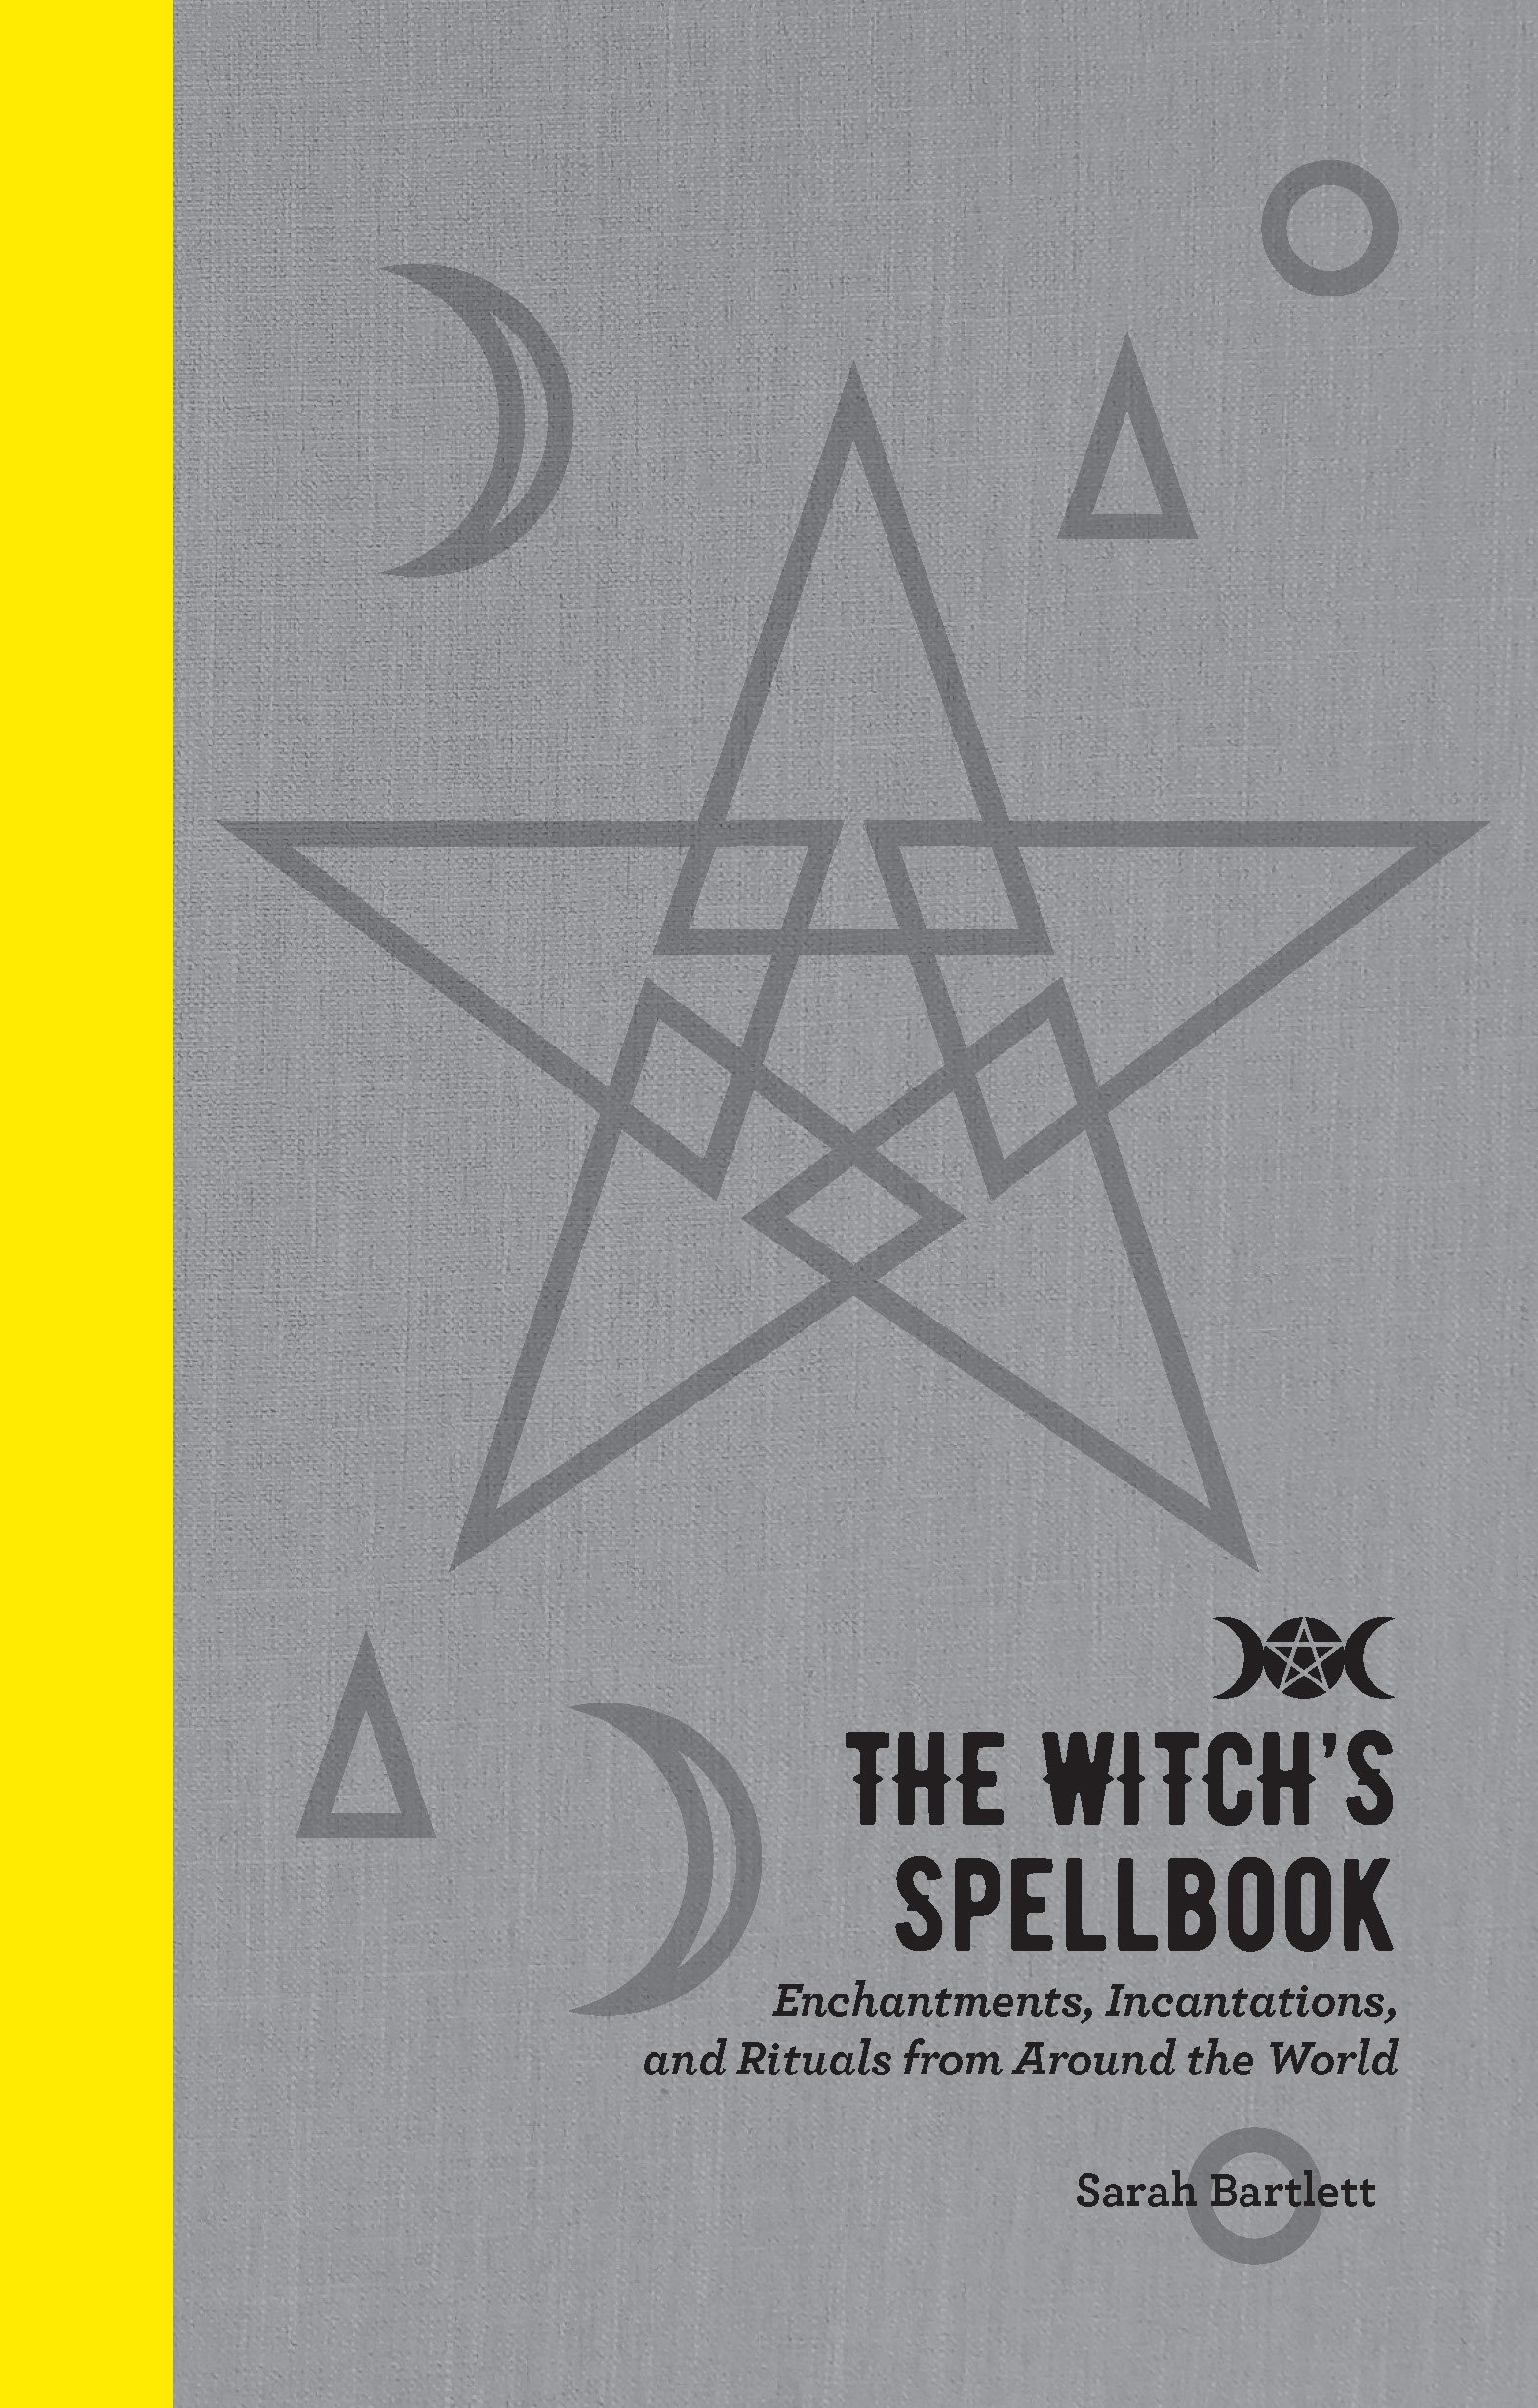 The Witch's Spellbook: Enchantments, Incantations, and Rituals from Around the World pdf epub